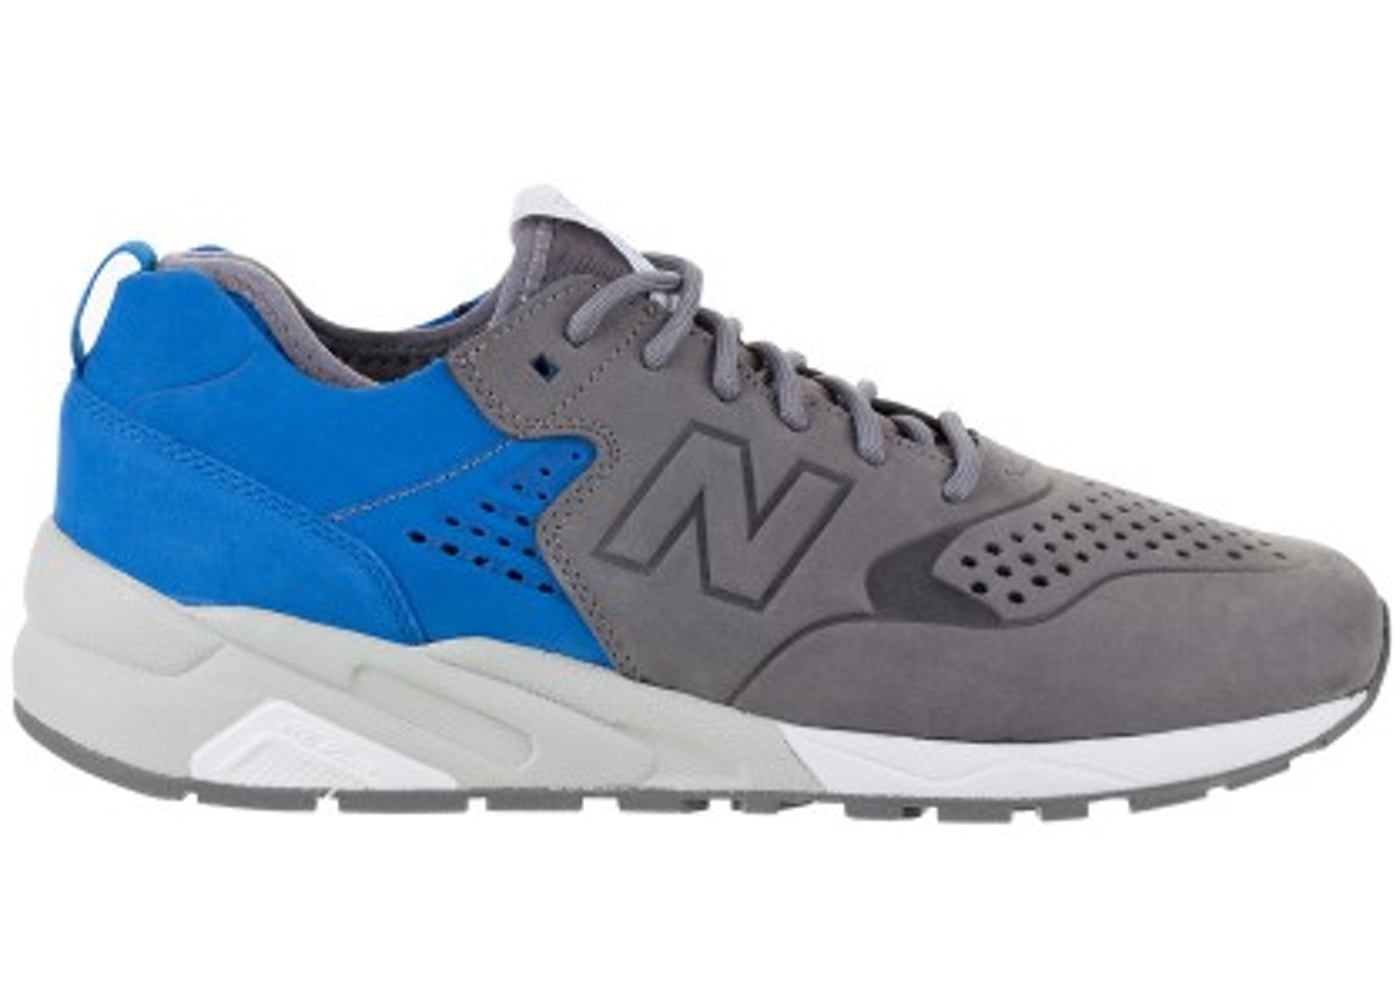 save off 559f7 8c079 New Balance 580 Re-Engineered Colette